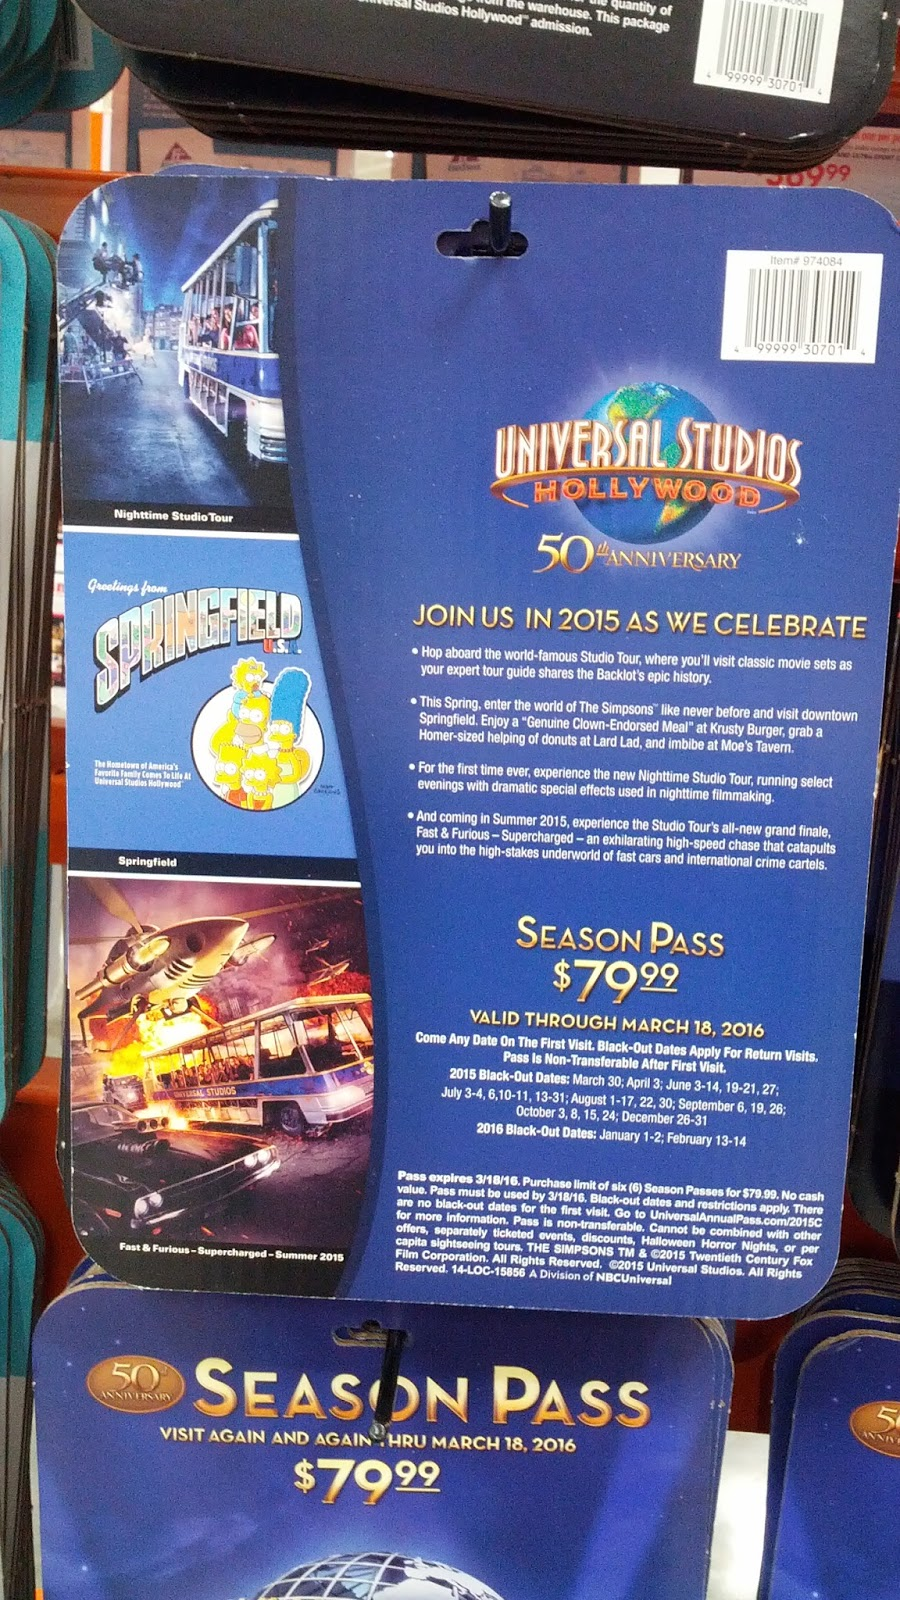 Universal Studios in Hollywood 2015 Season Pass